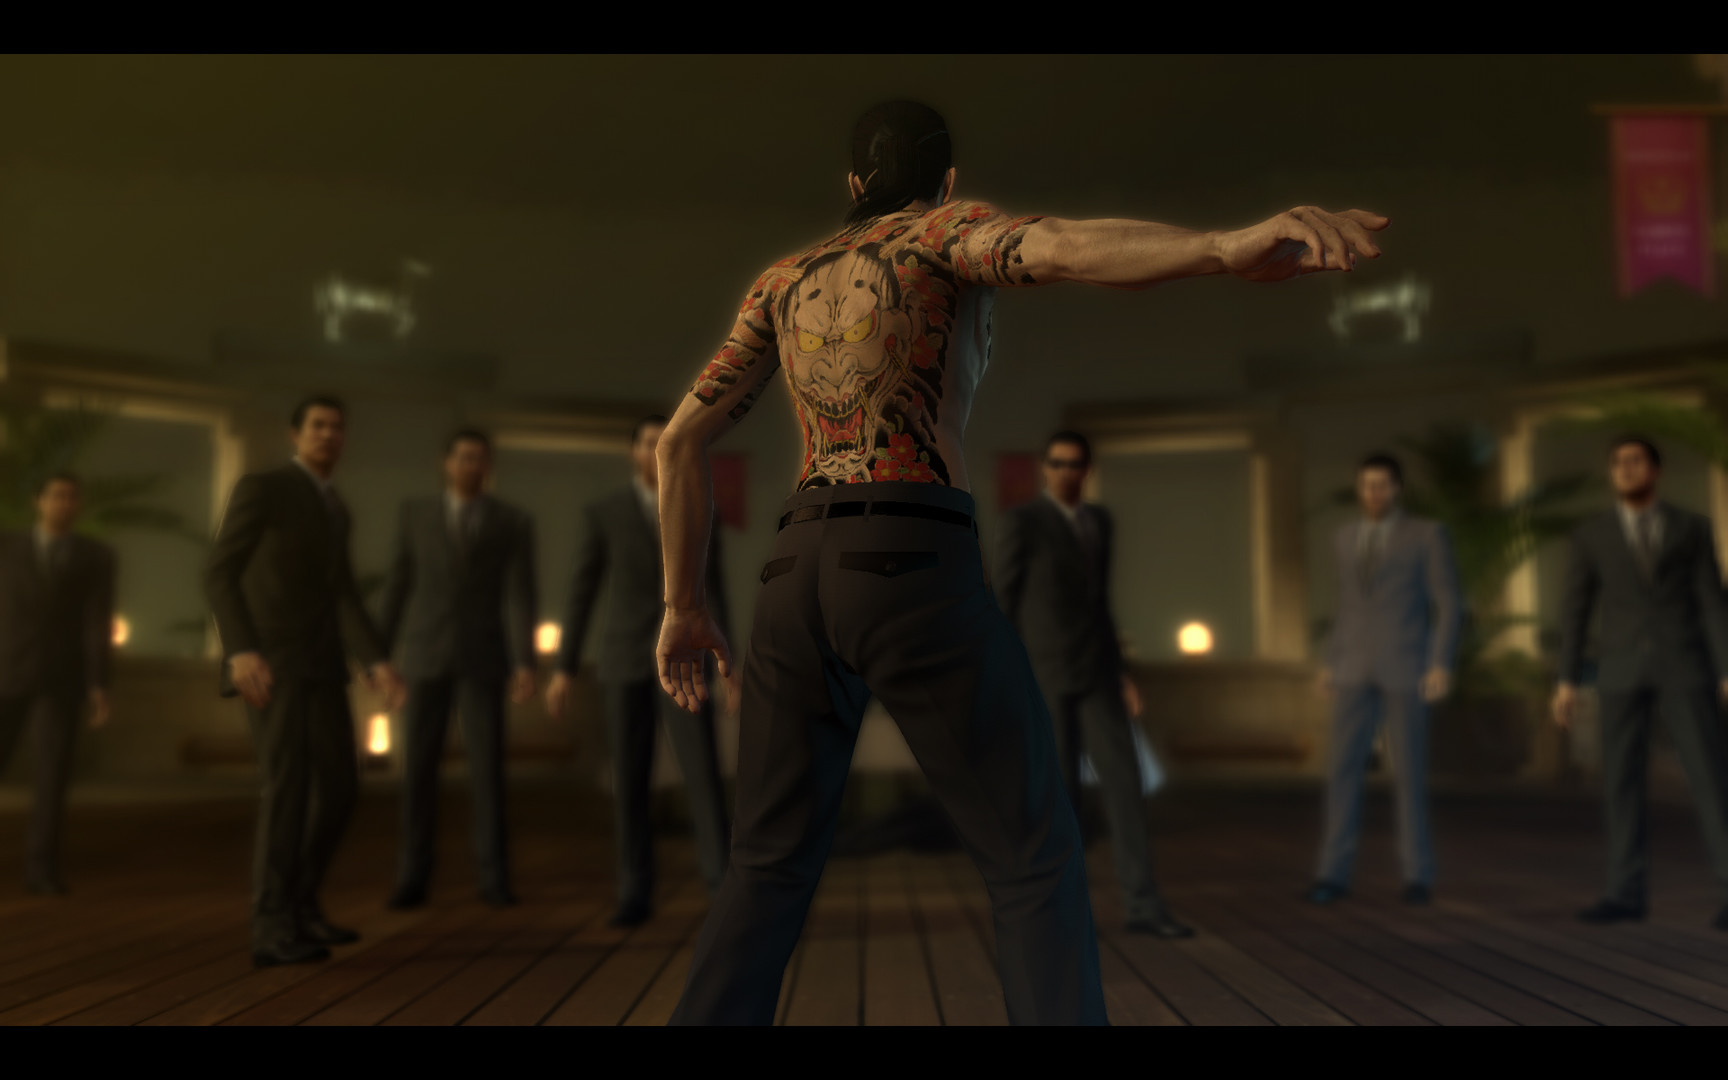 Yakuza 0 On Steam 4611 drawings on pixiv, japan. yakuza 0